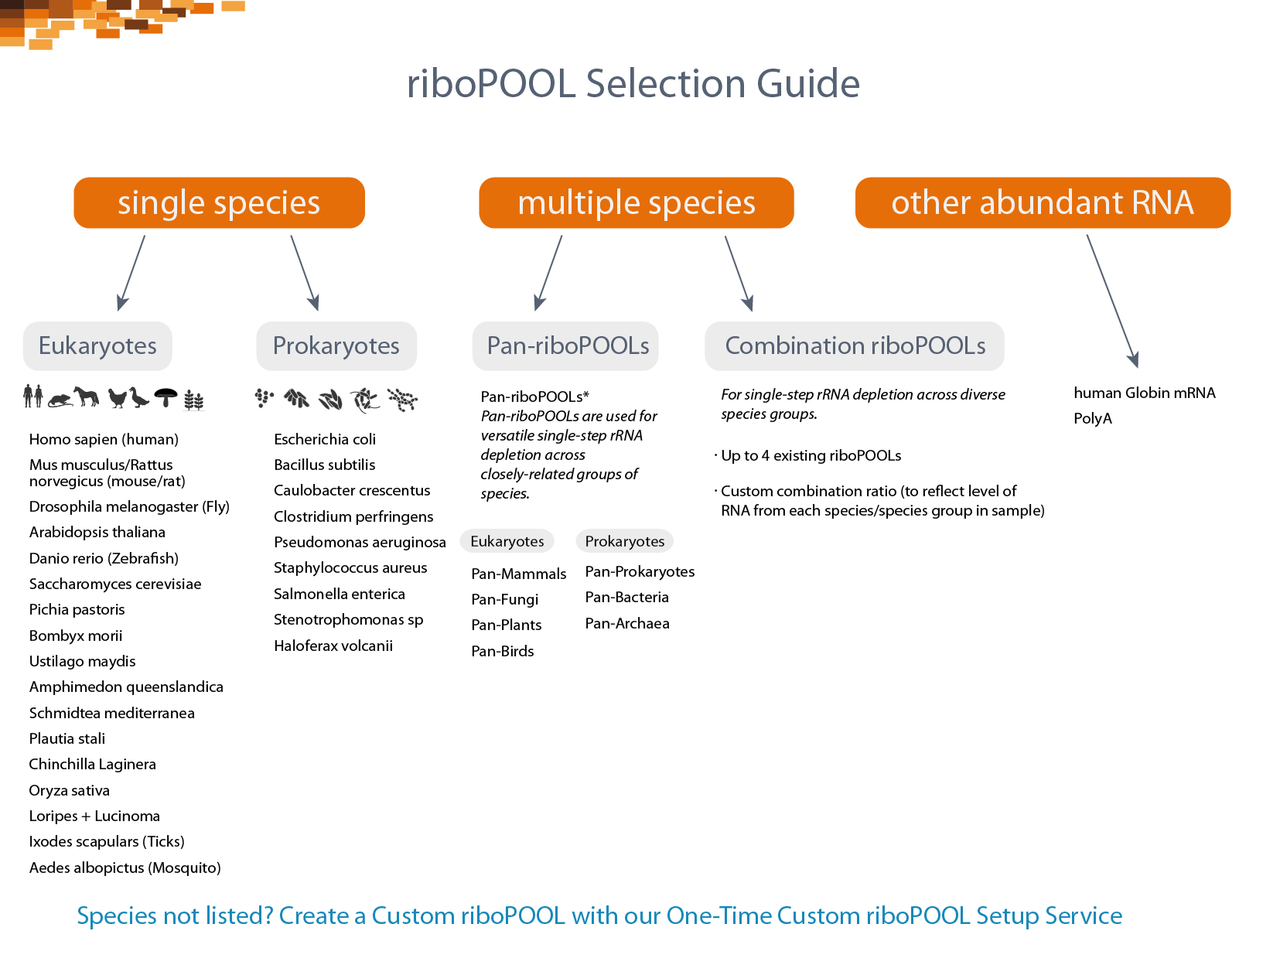 riboPOOL Selection Guide